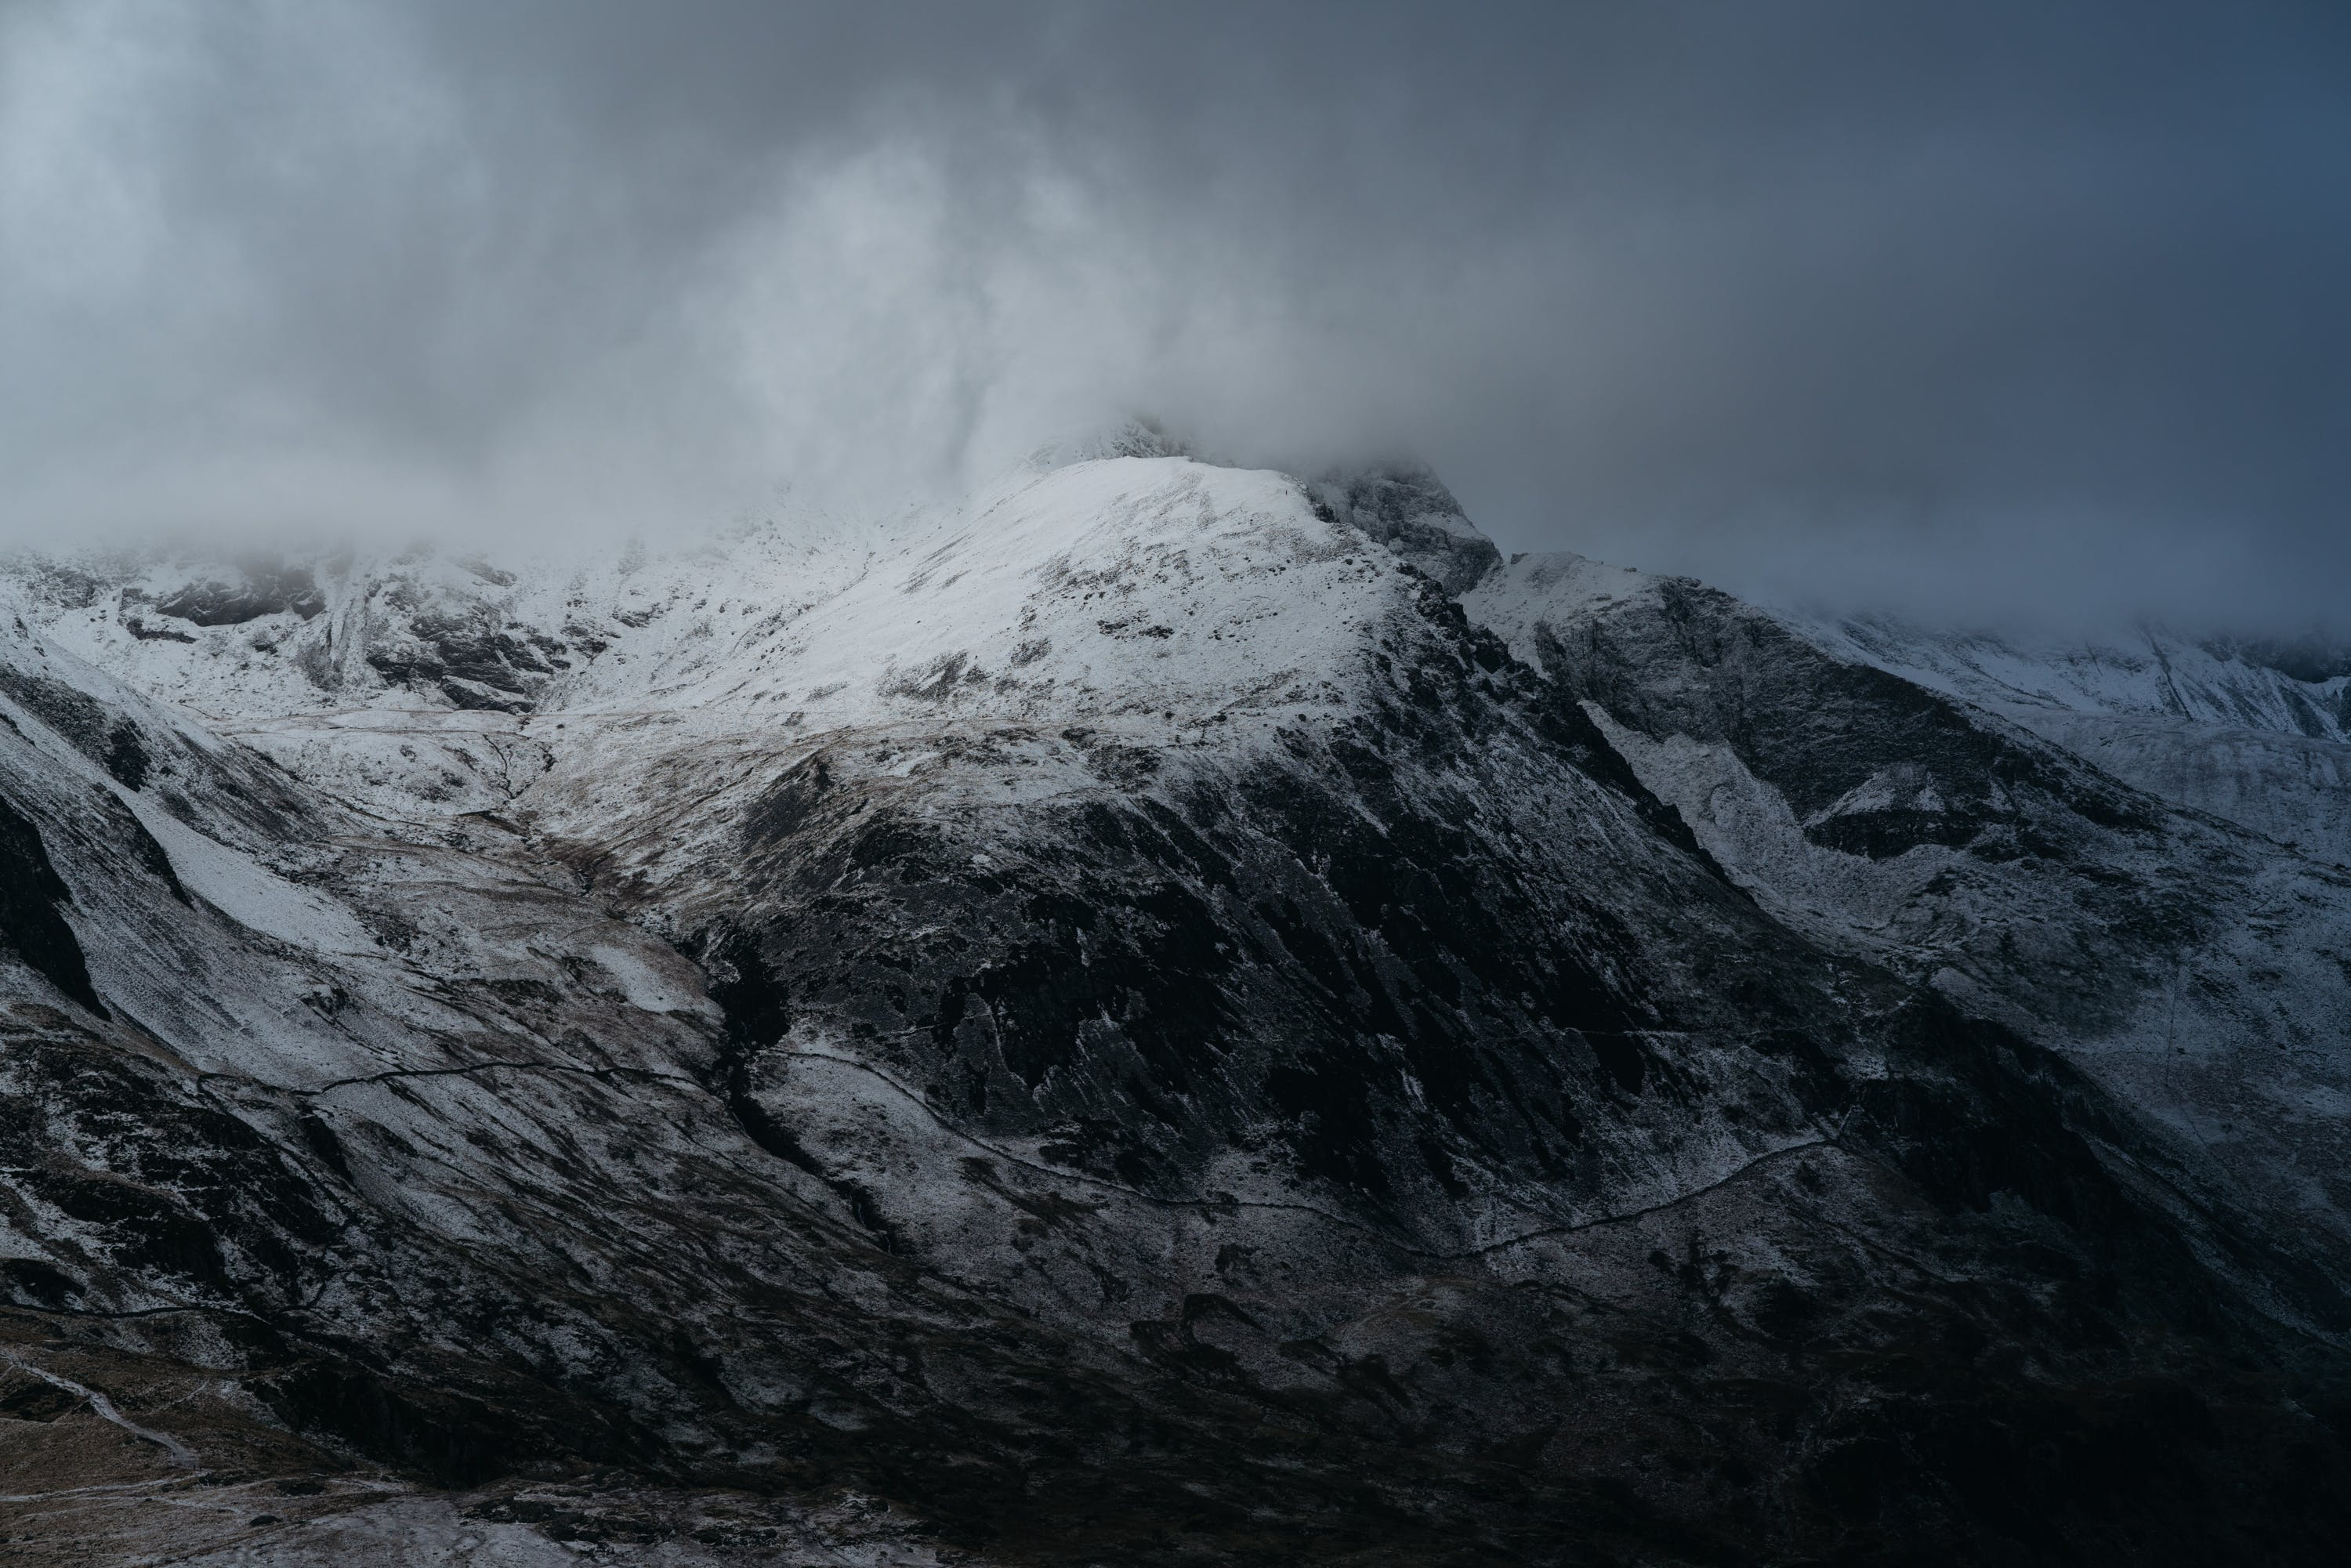 Snow-coned Mountain Under Cloudy Sky